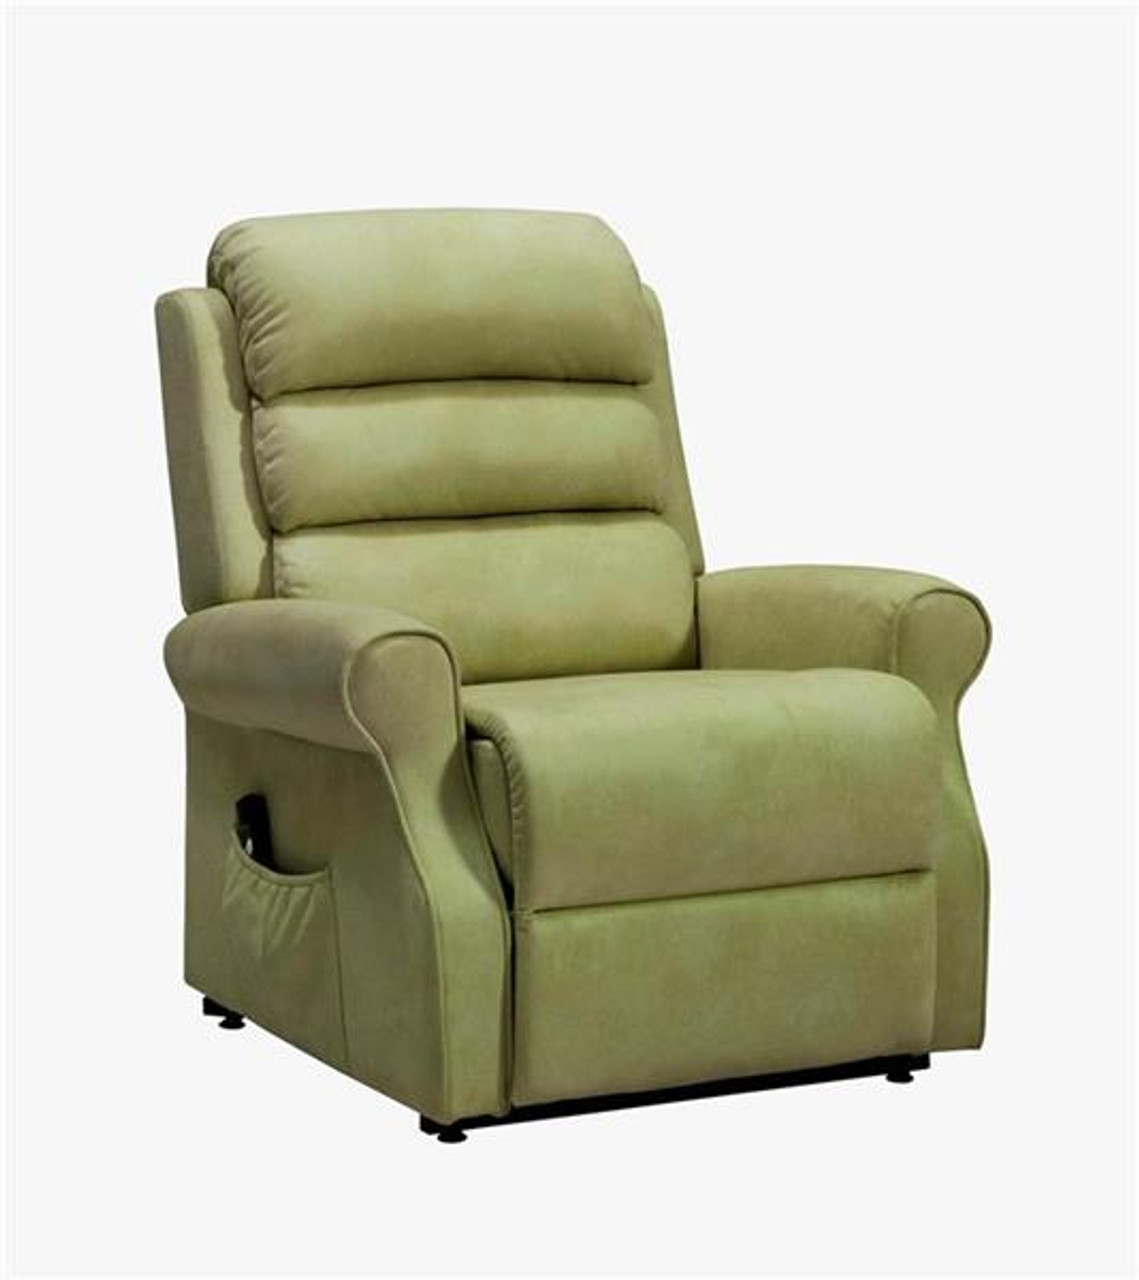 Picture of: Richmond 1 Motor Lift Fabric Recliner Chair Beige My Furniture Store Furniture And Bedding Super Store Australia